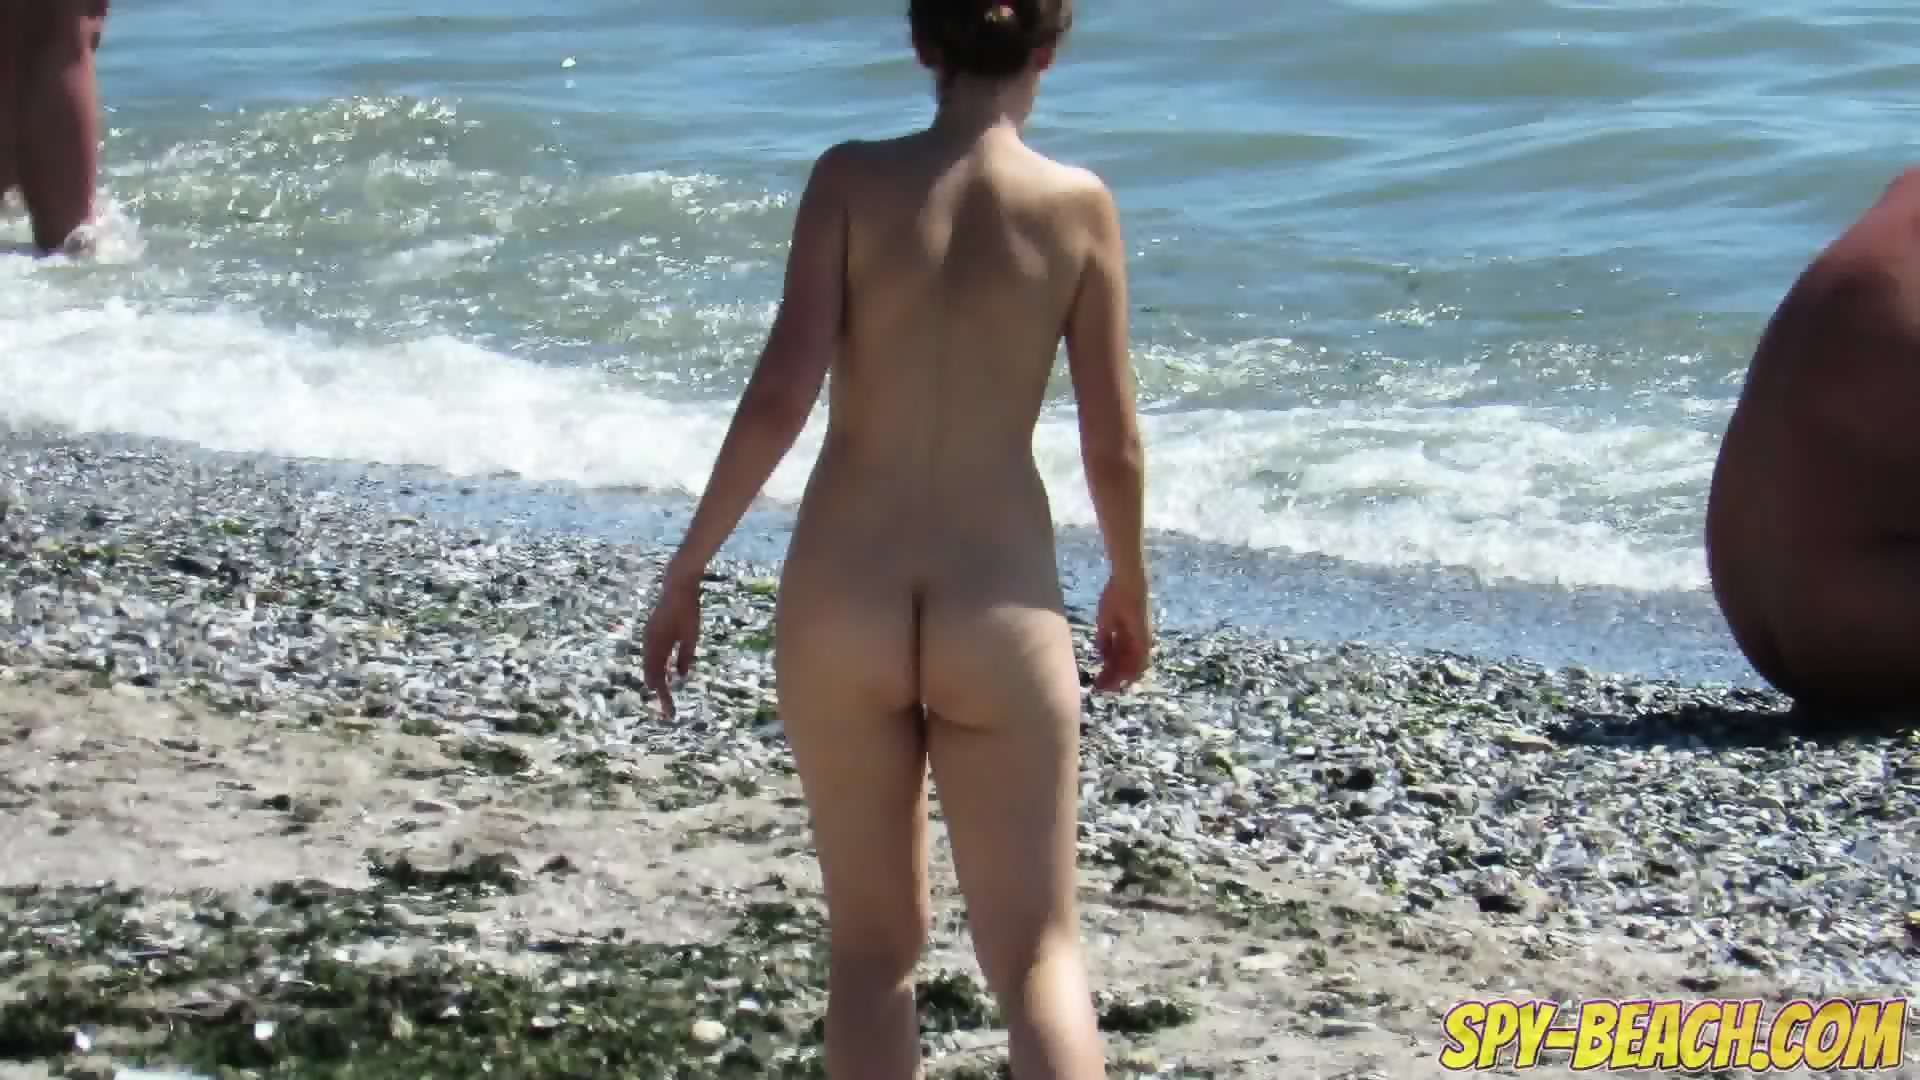 Join. nude people in beach hd really